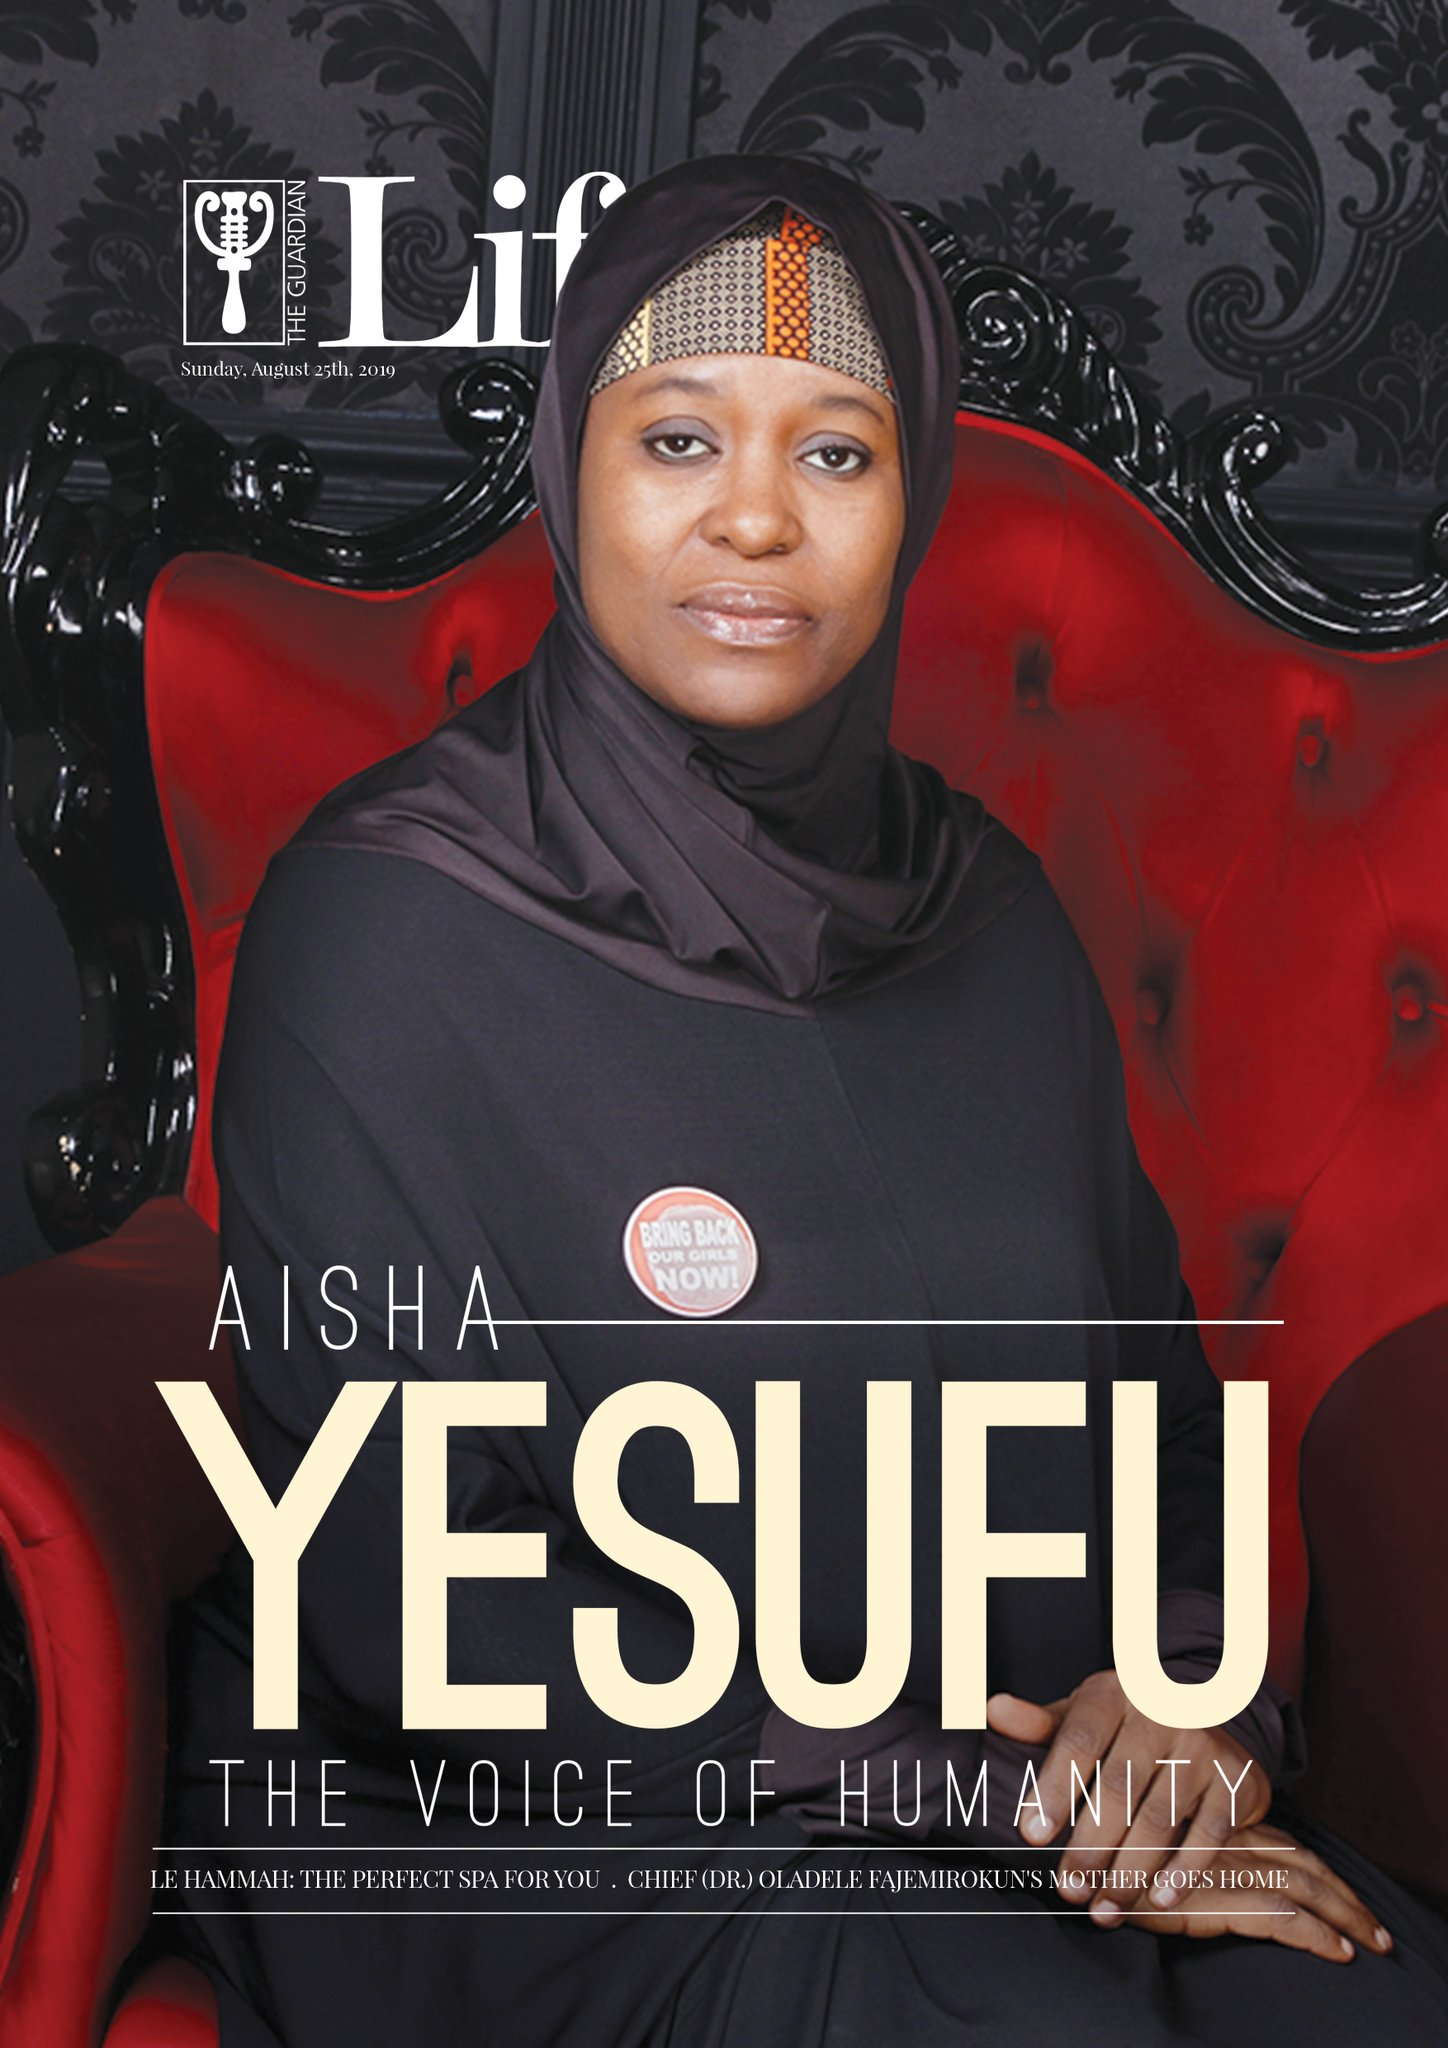 Aisha Yesufu Speaks on Being a Girl Child in Northern Nigeria as She Covers Guardian Life Magazine